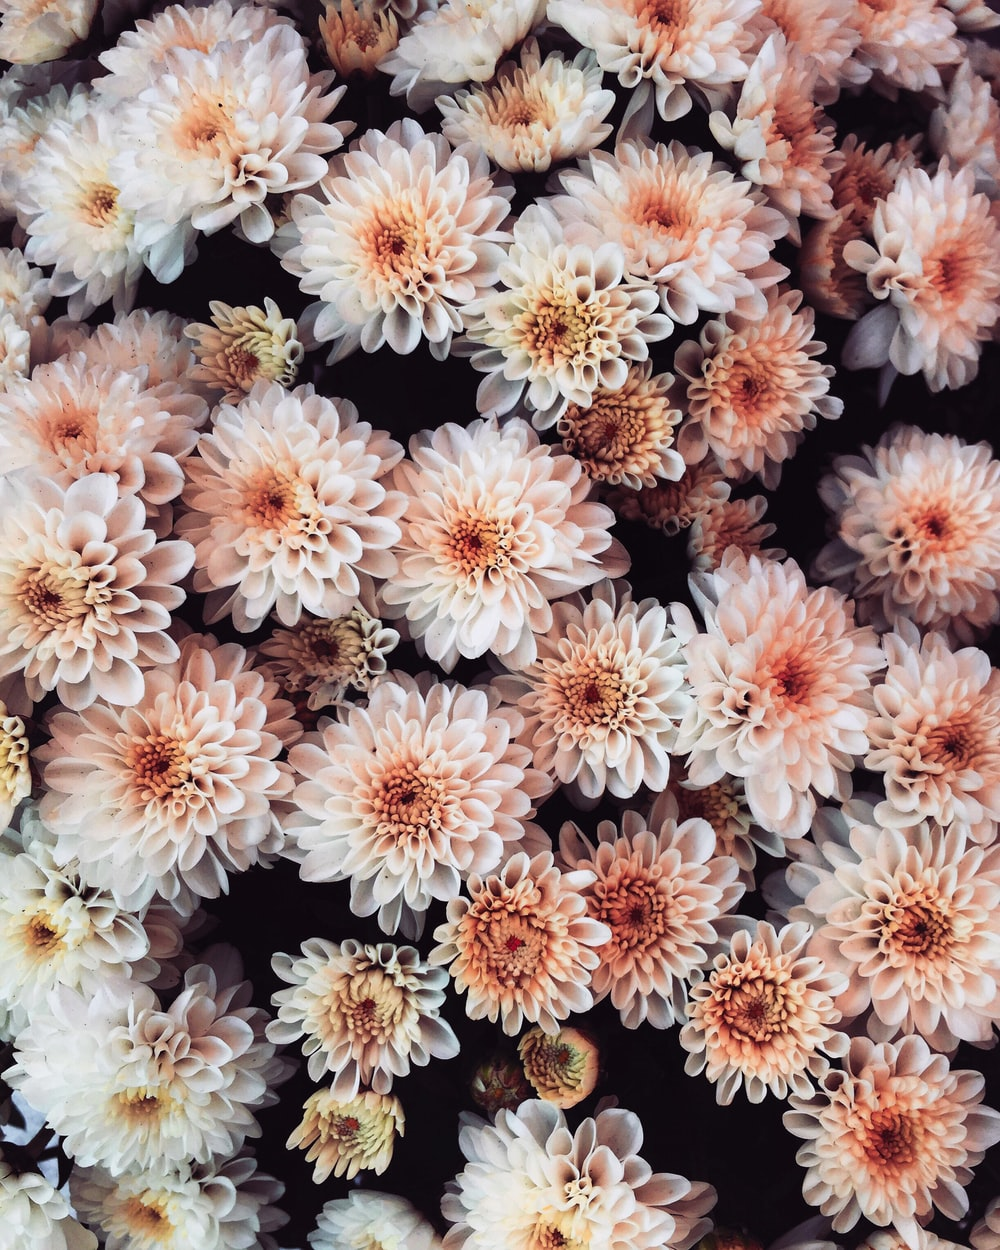 white and brown flowers in close up photography